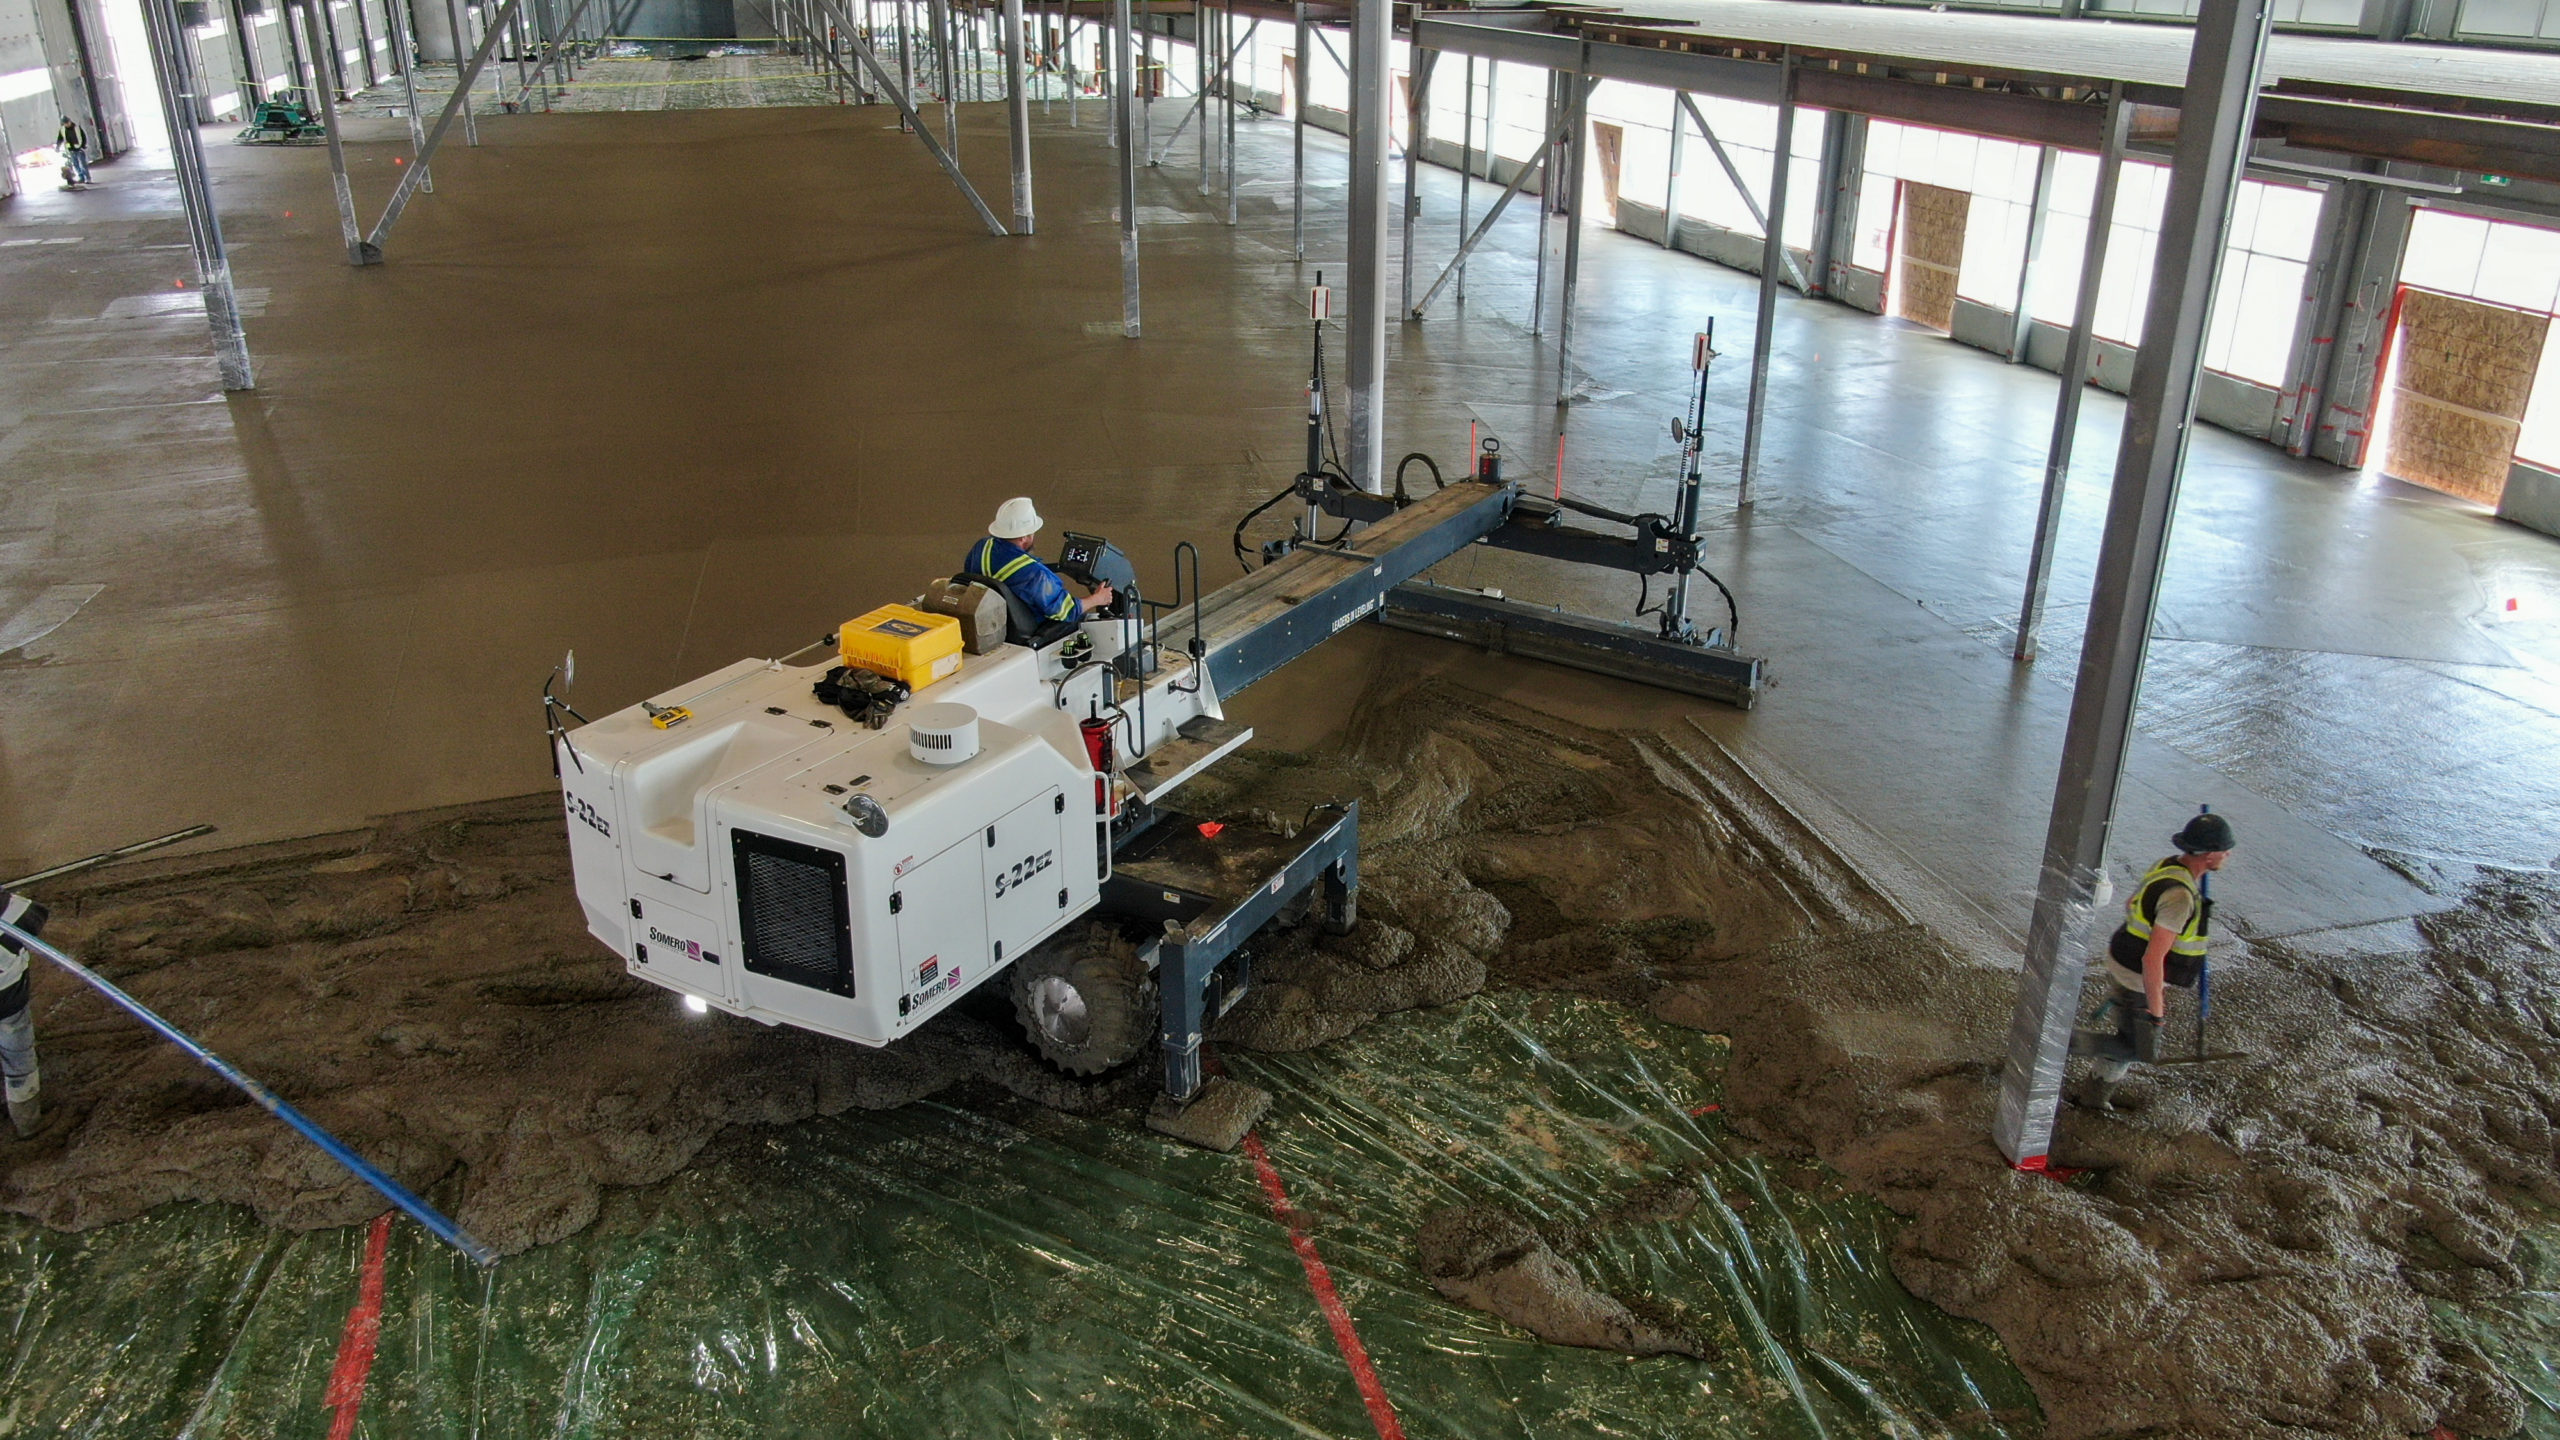 Dynamic Concrete Pumping placing superflat floors in the HF11 industrial condo development